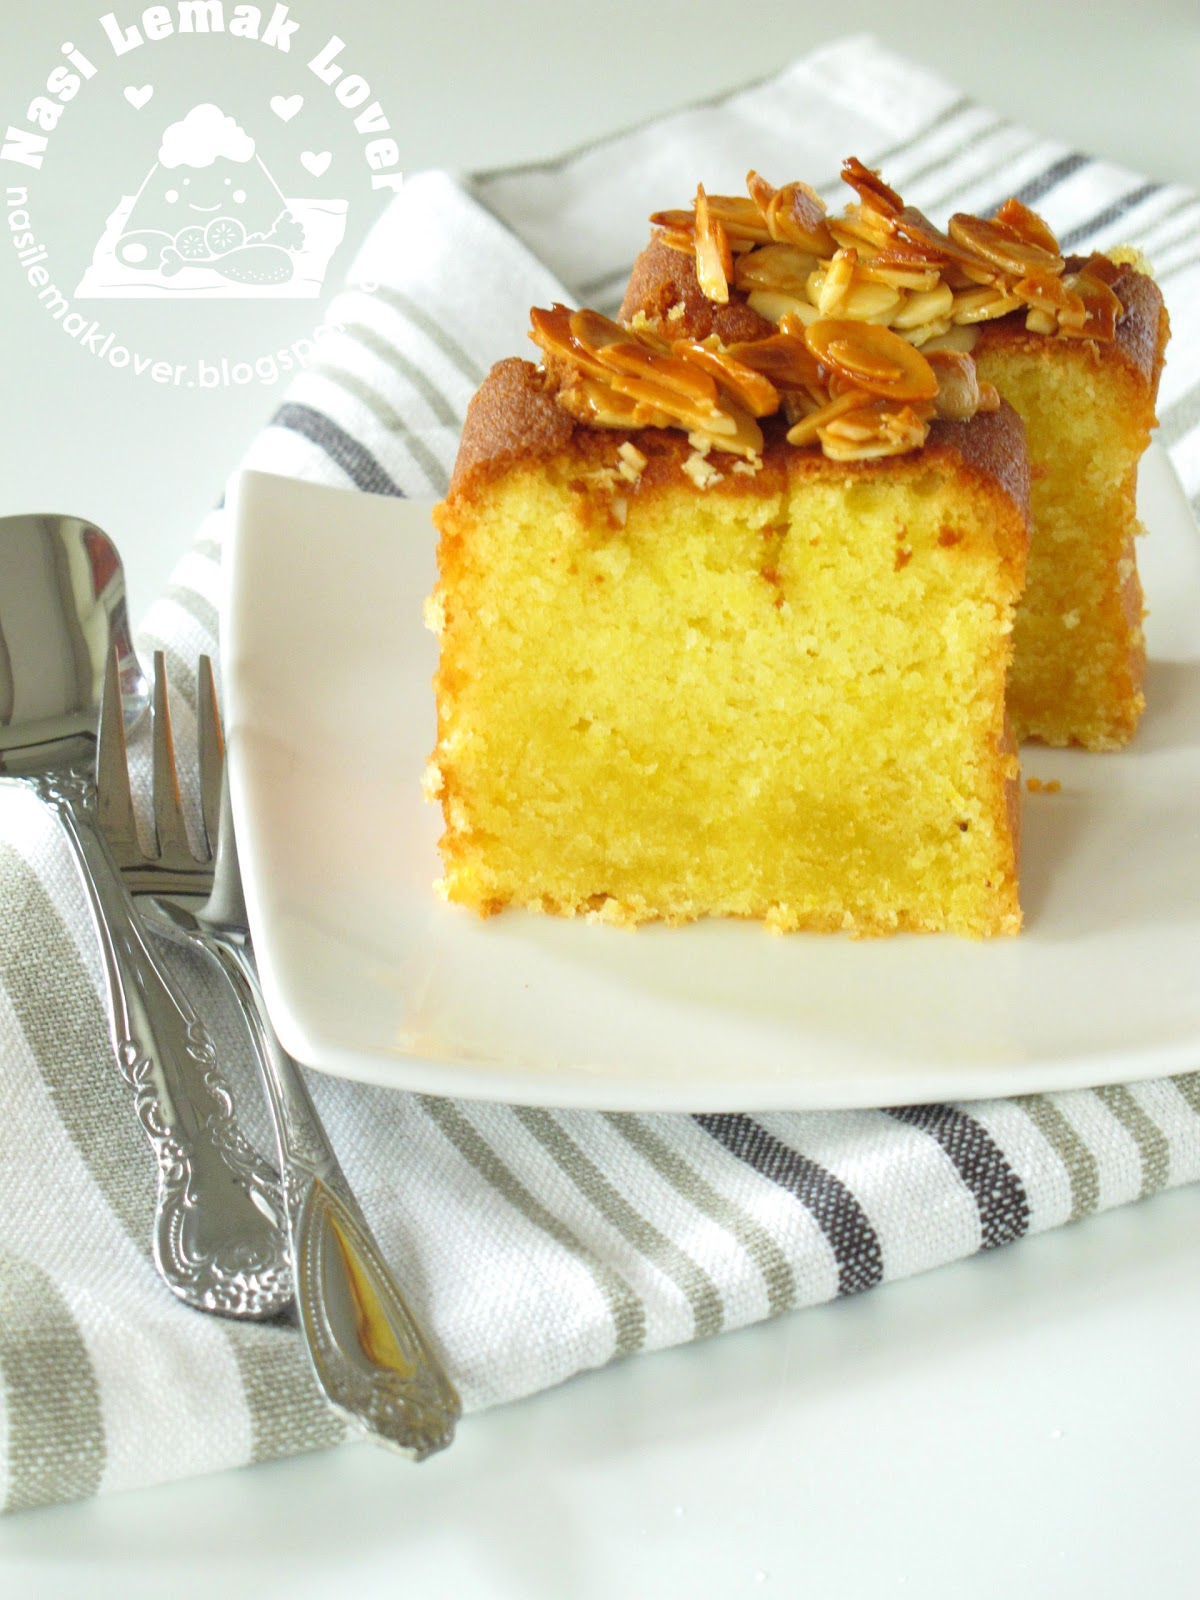 Nasi Lemak Lover: Orange Almond Butter Cake with Honey Almond Crust